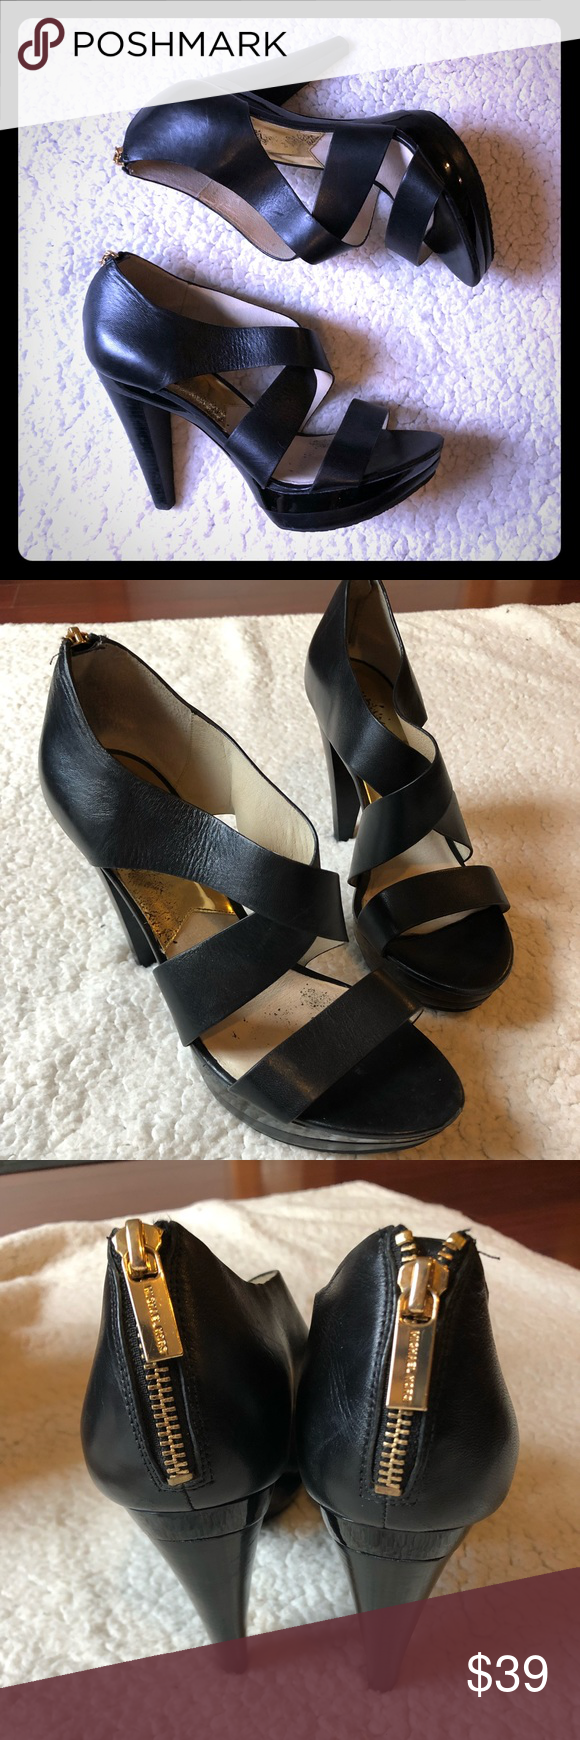 da839515685 Spotted while shopping on Poshmark  Michael Kors heels!  poshmark  fashion   shopping  style  Michael Kors  Shoes